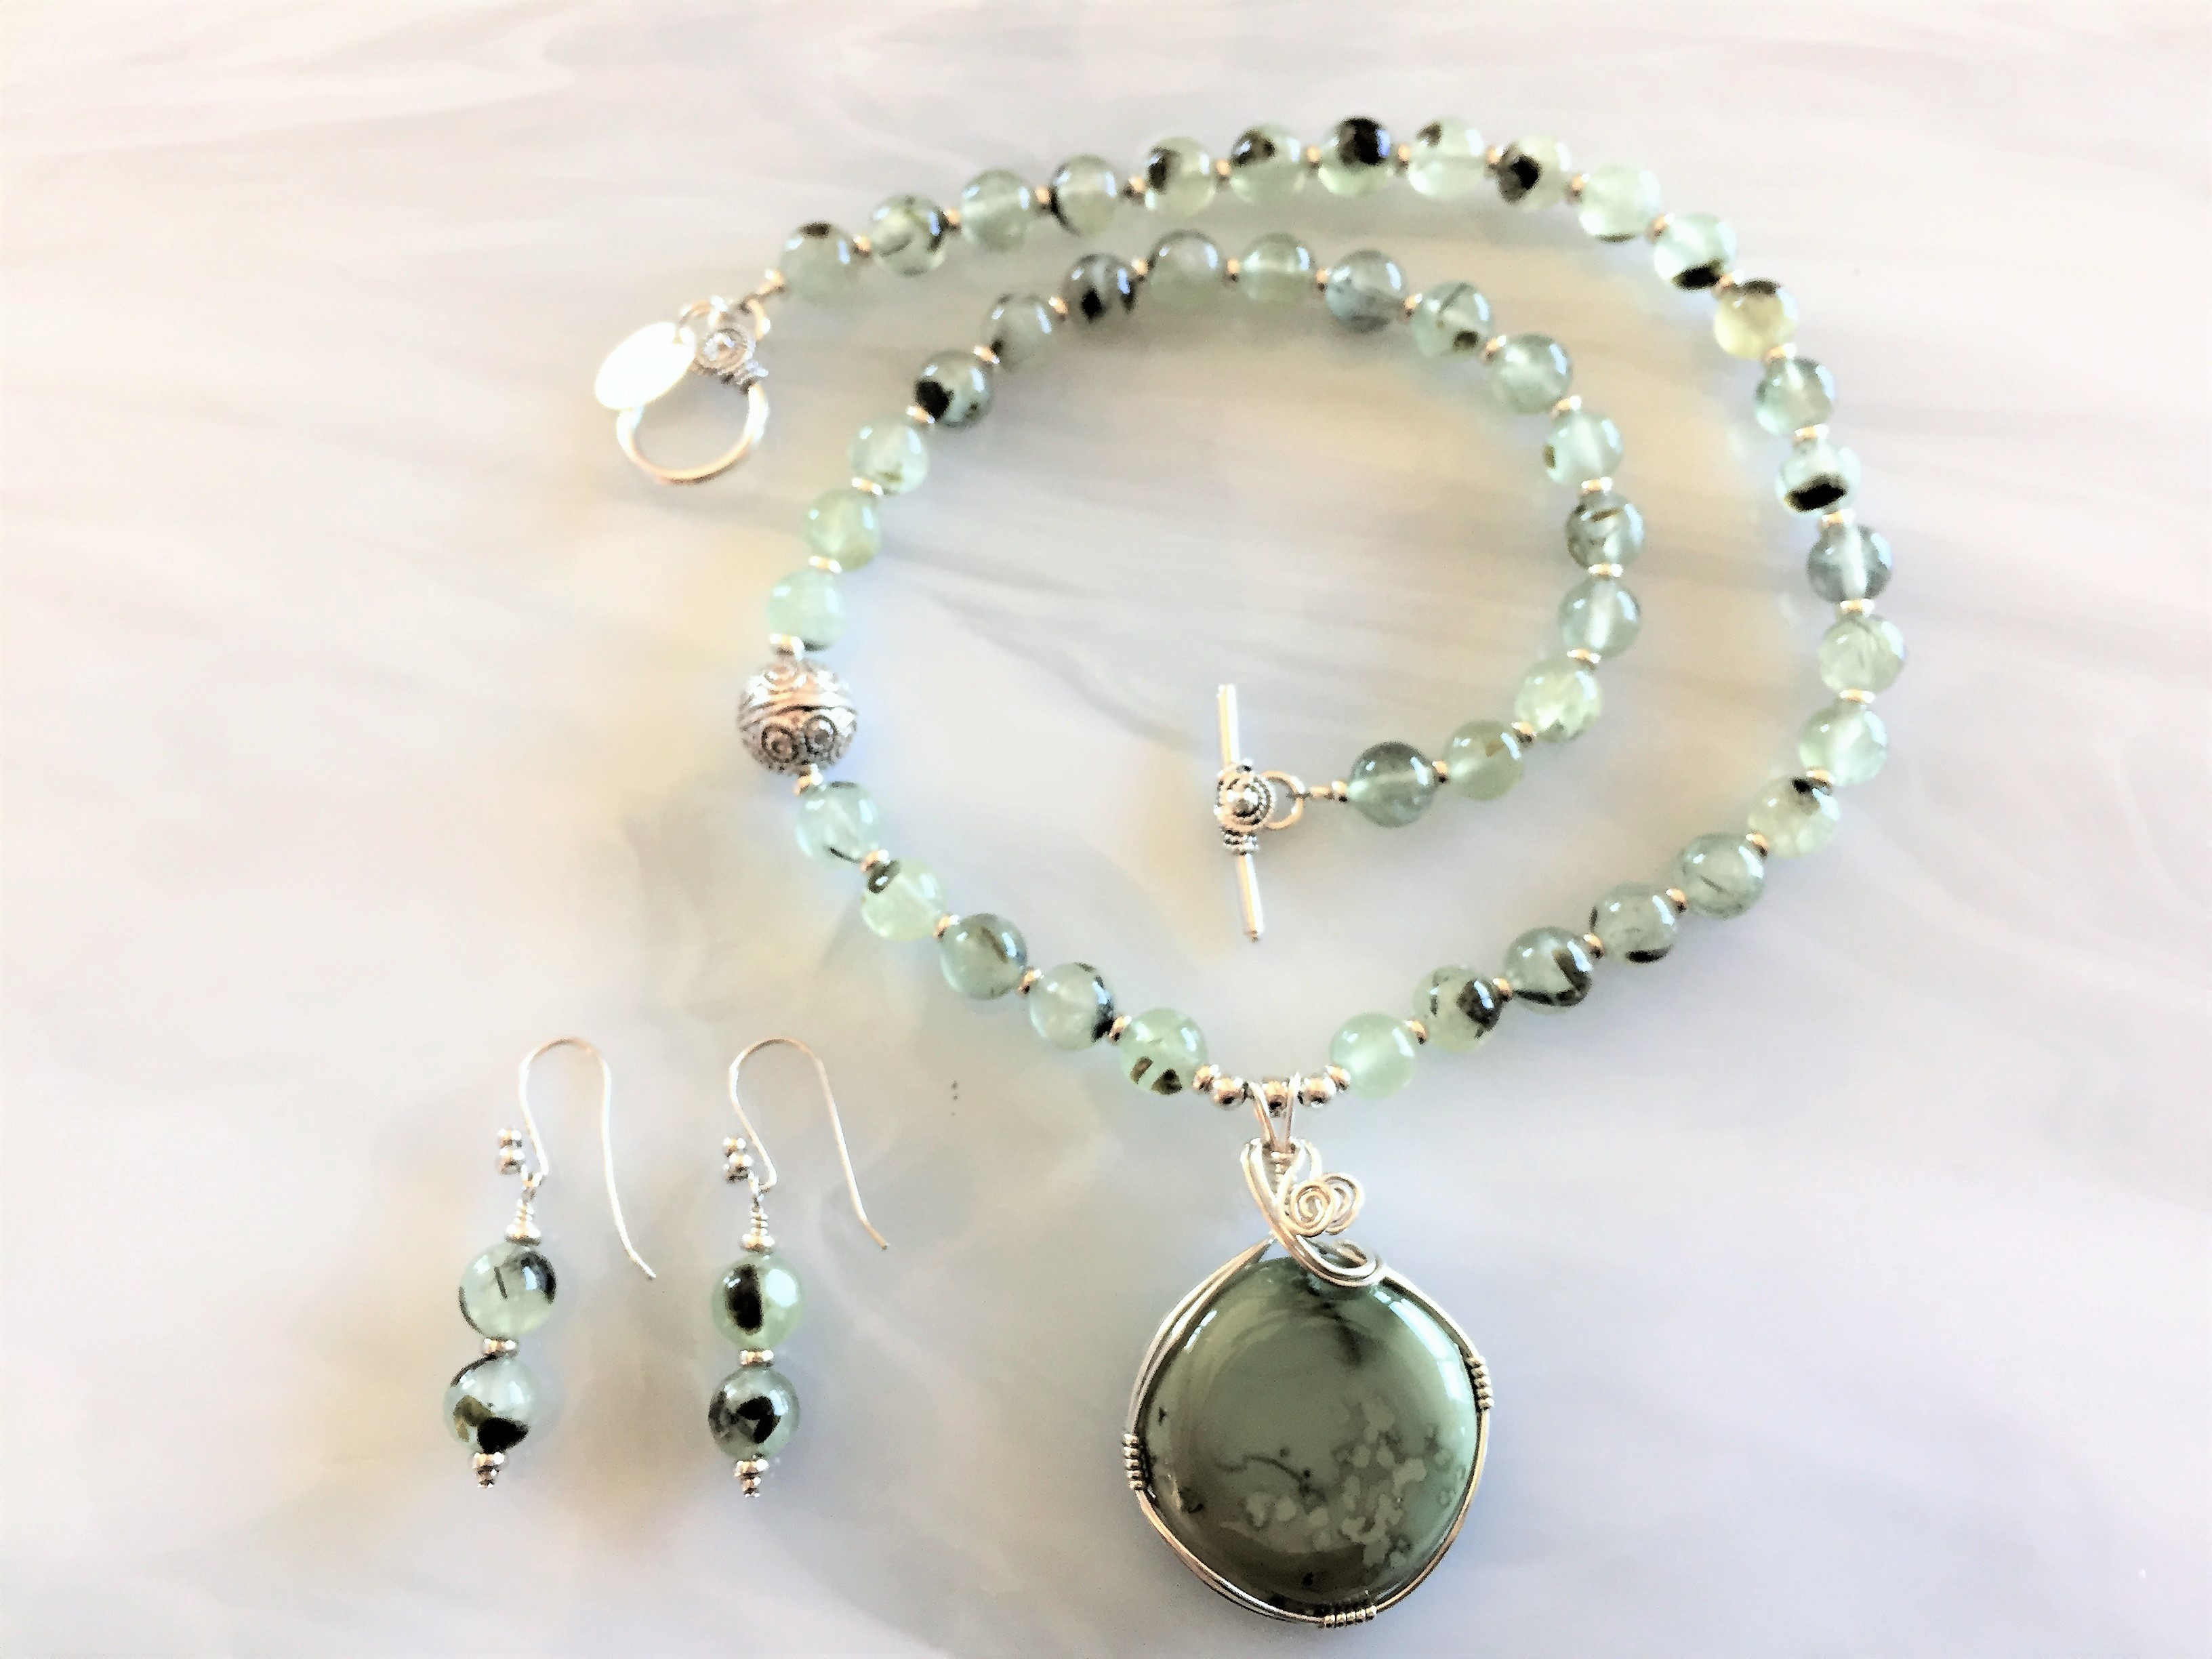 chrysoprase img and labradorite products designs wallis necklace